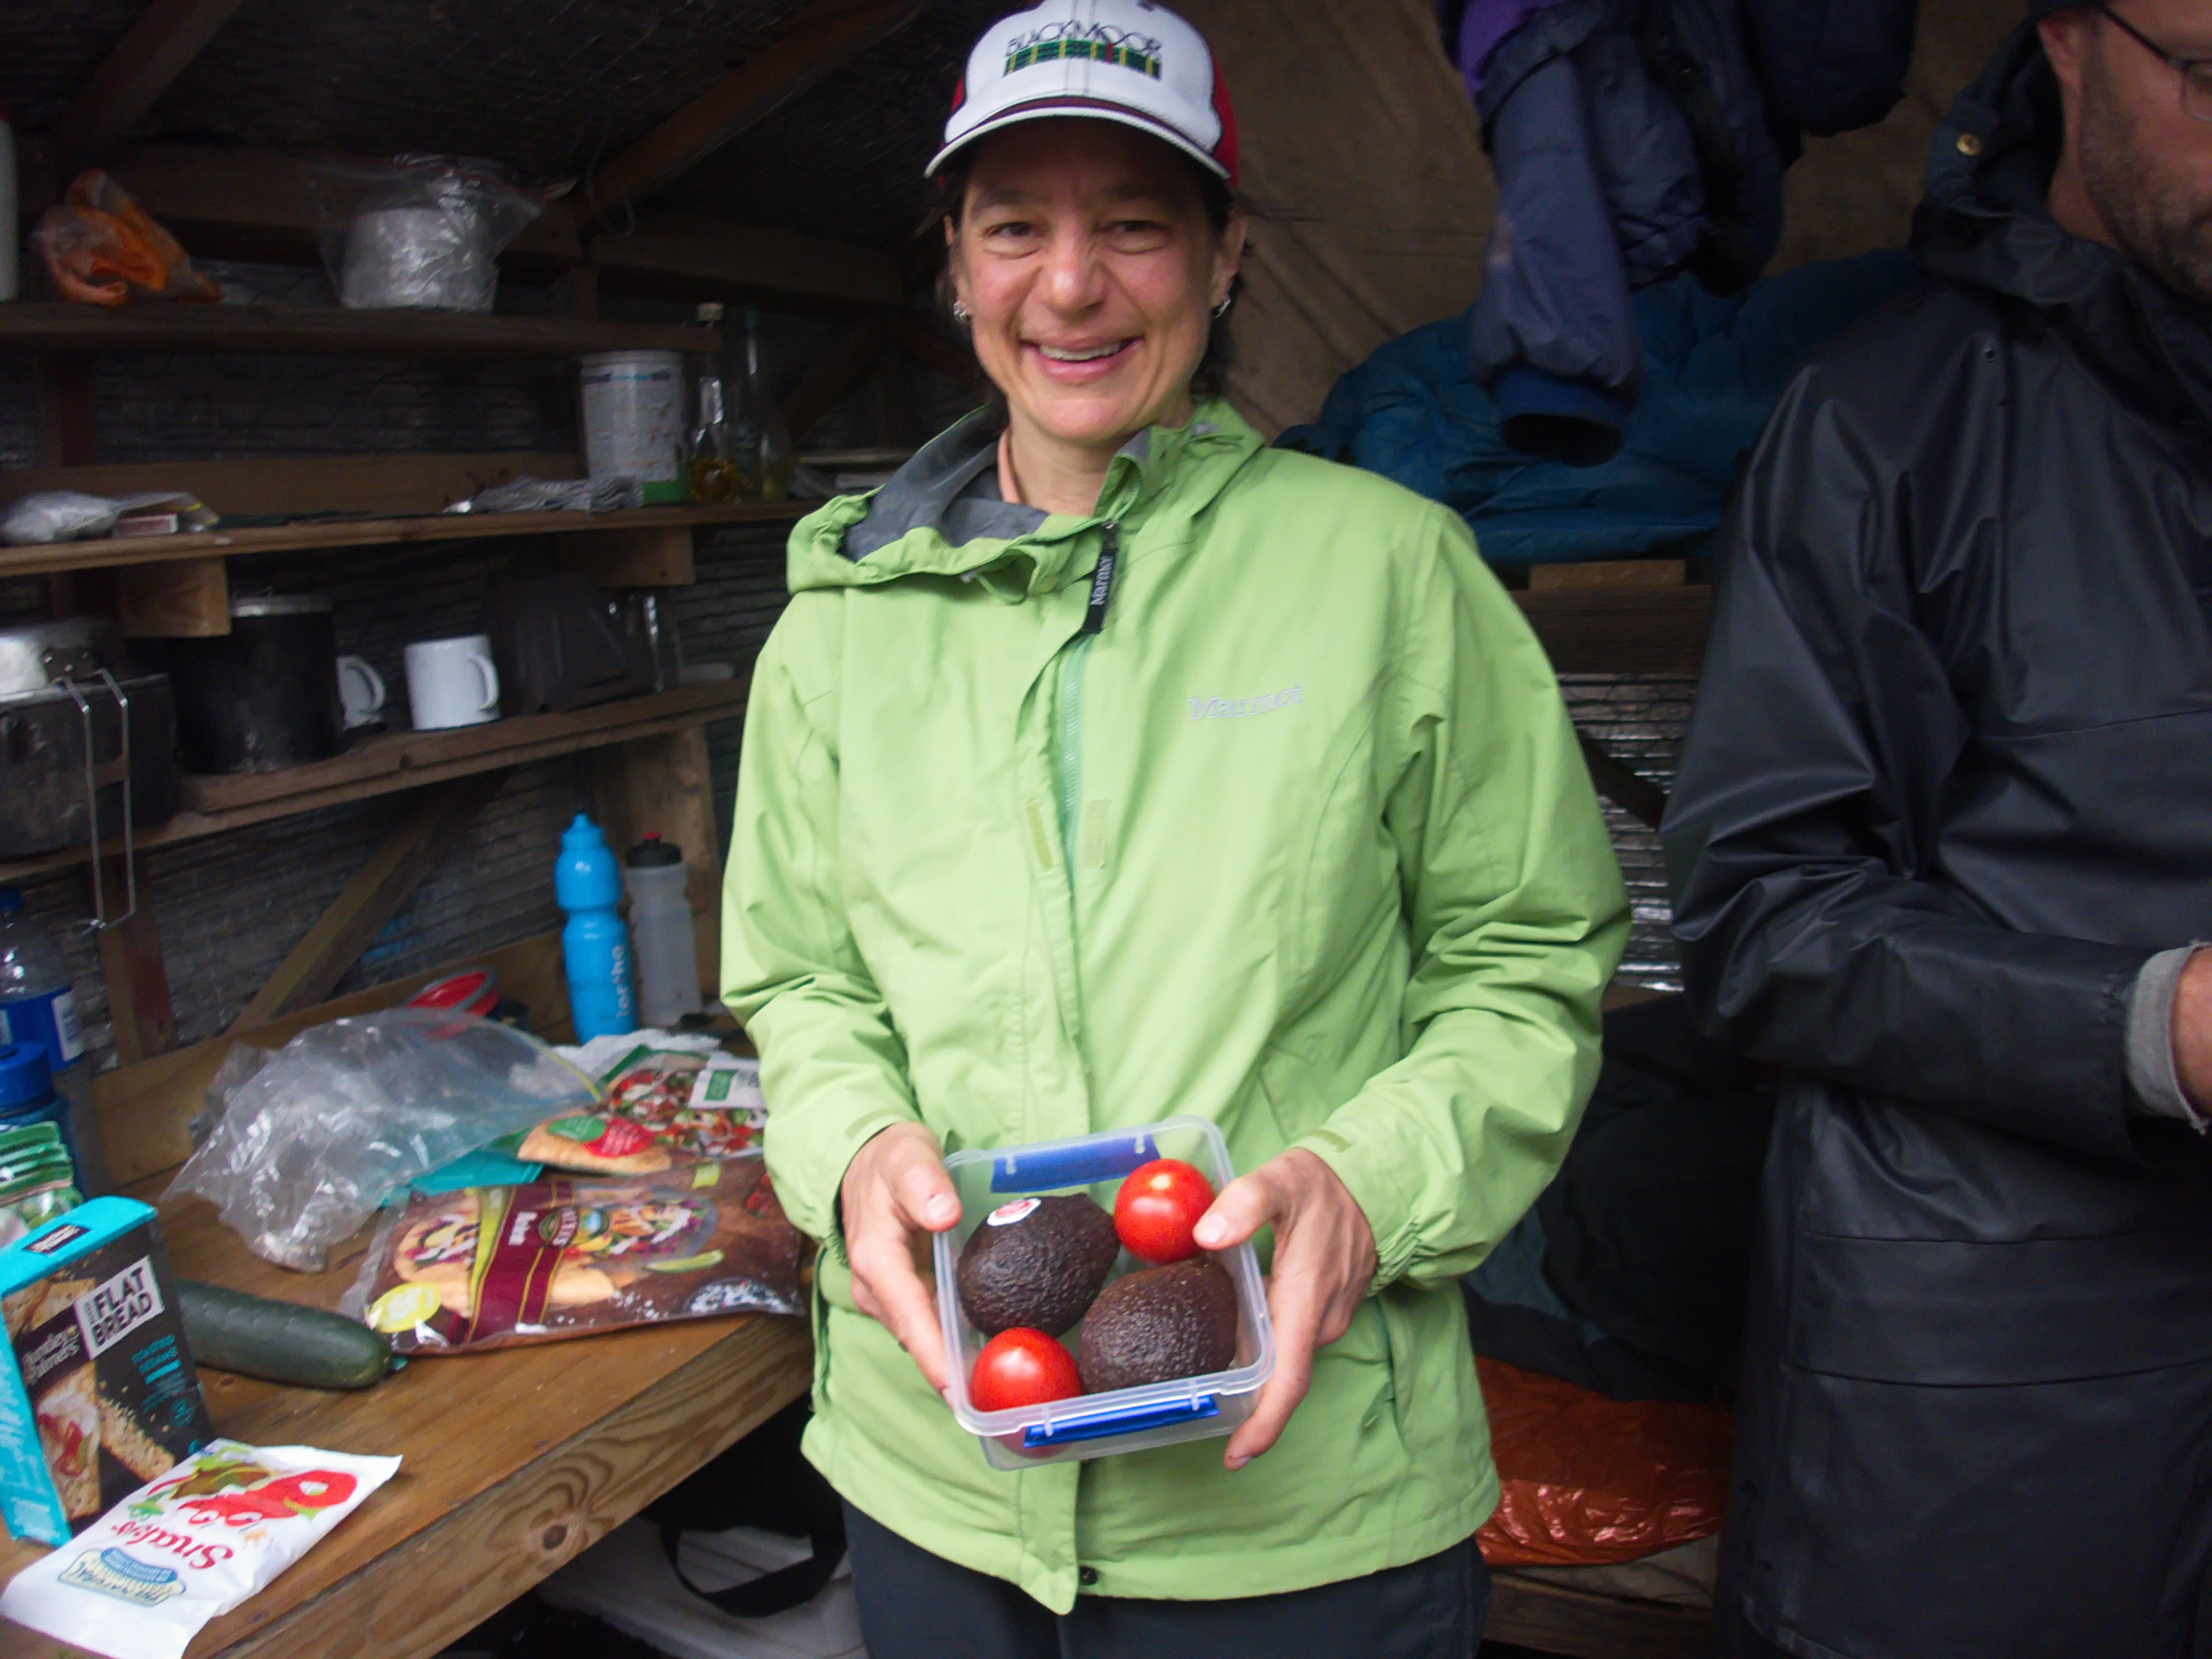 A woman wearing a cap and a green jacket inside a camping hut holding a container with two avocados and two tomatoes